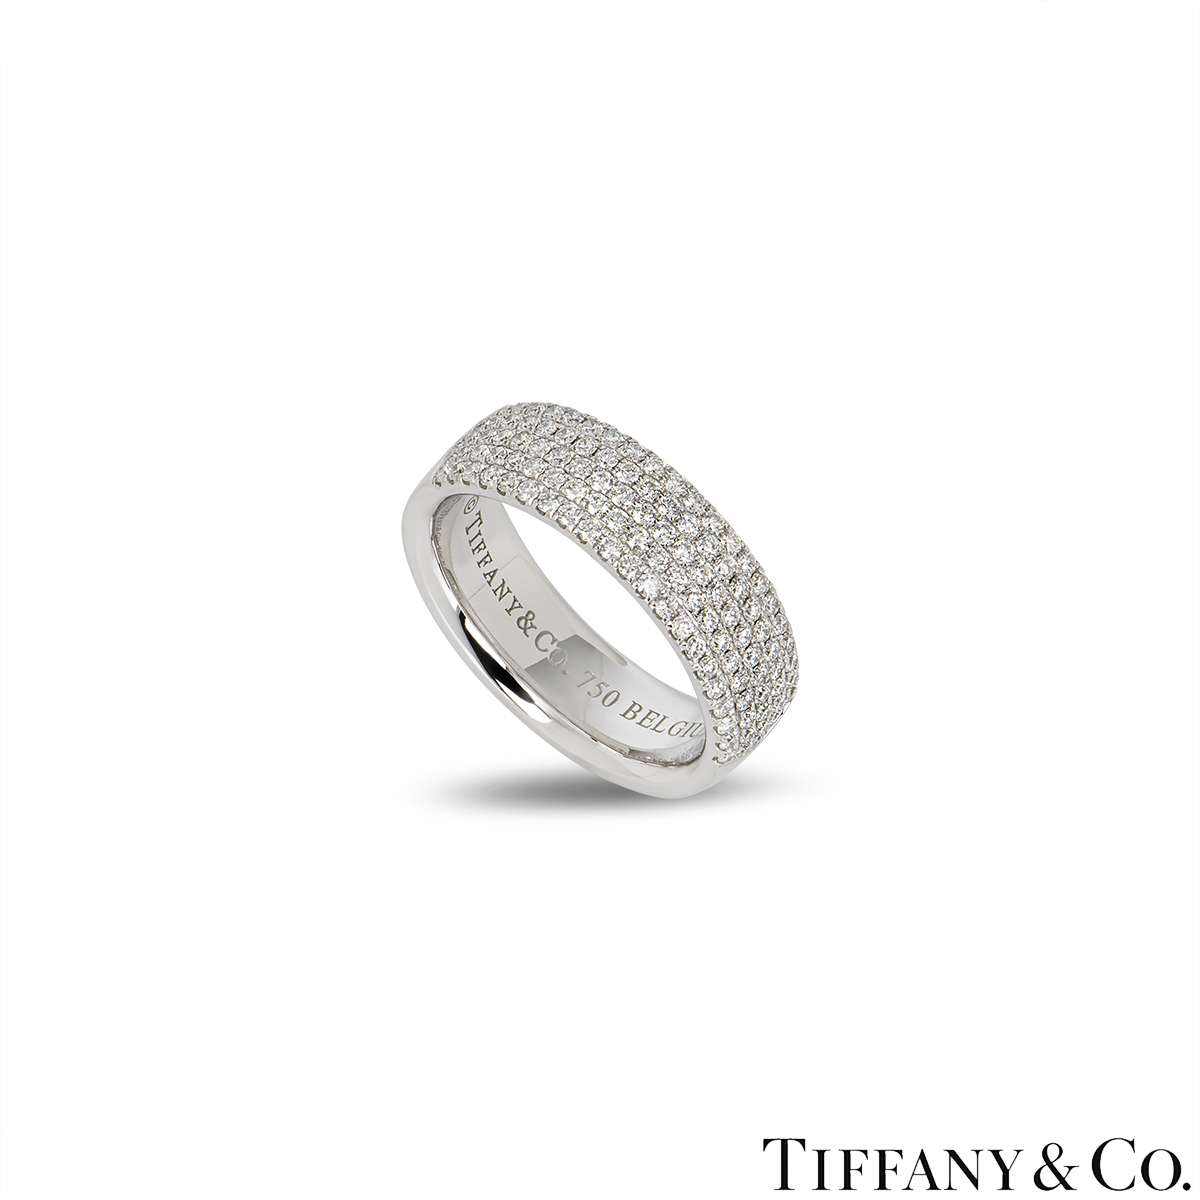 Tiffany & Co. White Gold Diamond Band Ring 0.76ct G/VS